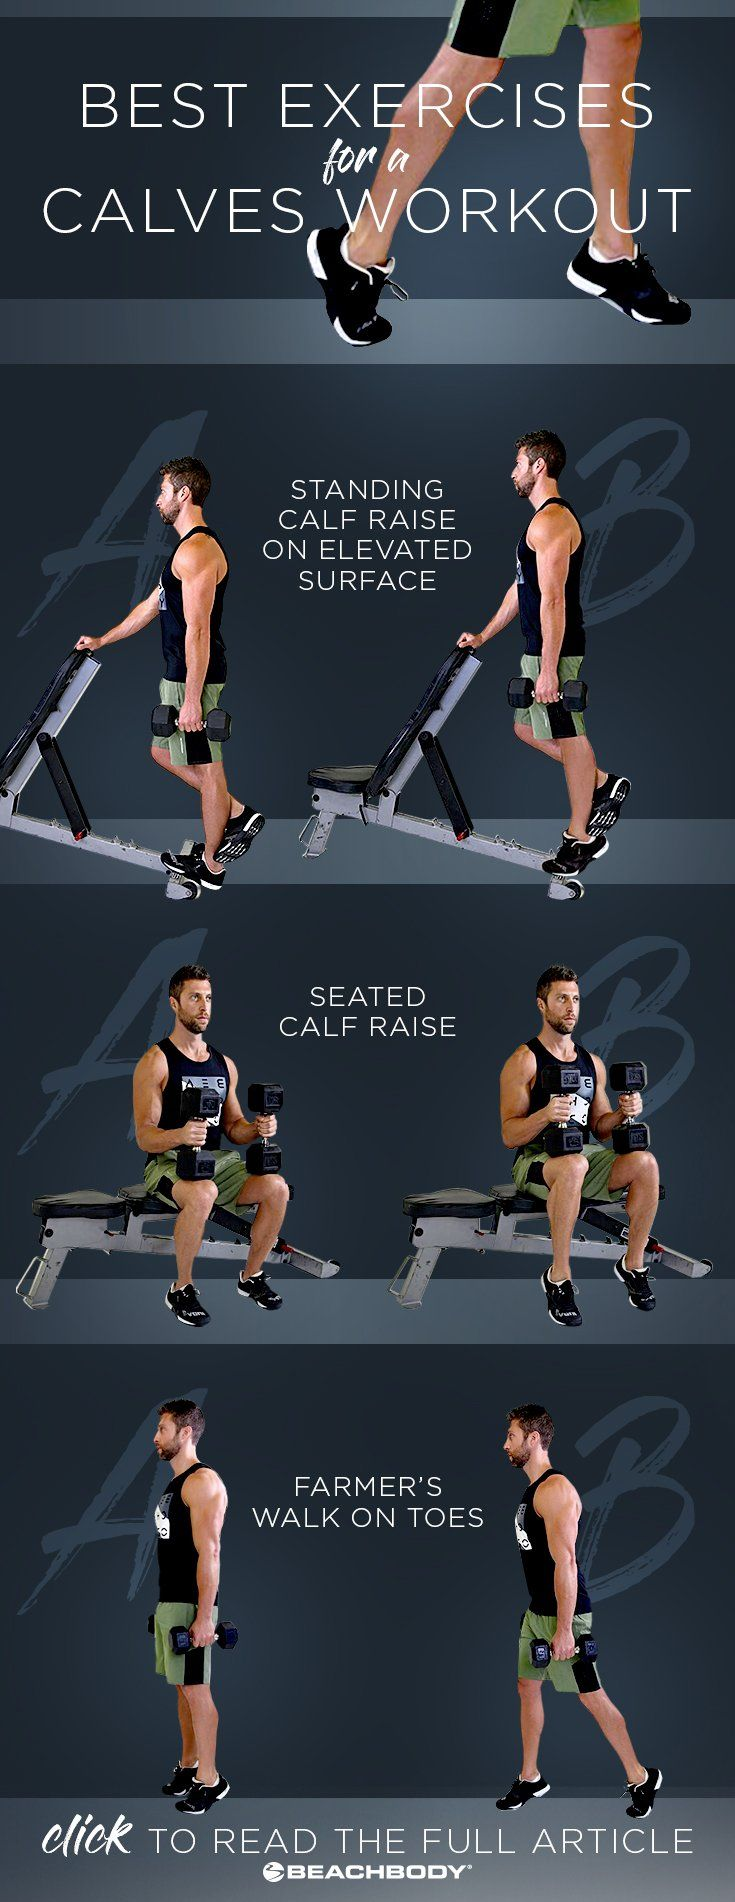 Start building bigger calf muscles with this calves workout at home. The list of exercises and stretches will help you get on your way to building stronger, more defined calf muscles. Beachbody Blog // #calfworkouts #athomeworkouts #beachbody #fitnesstips